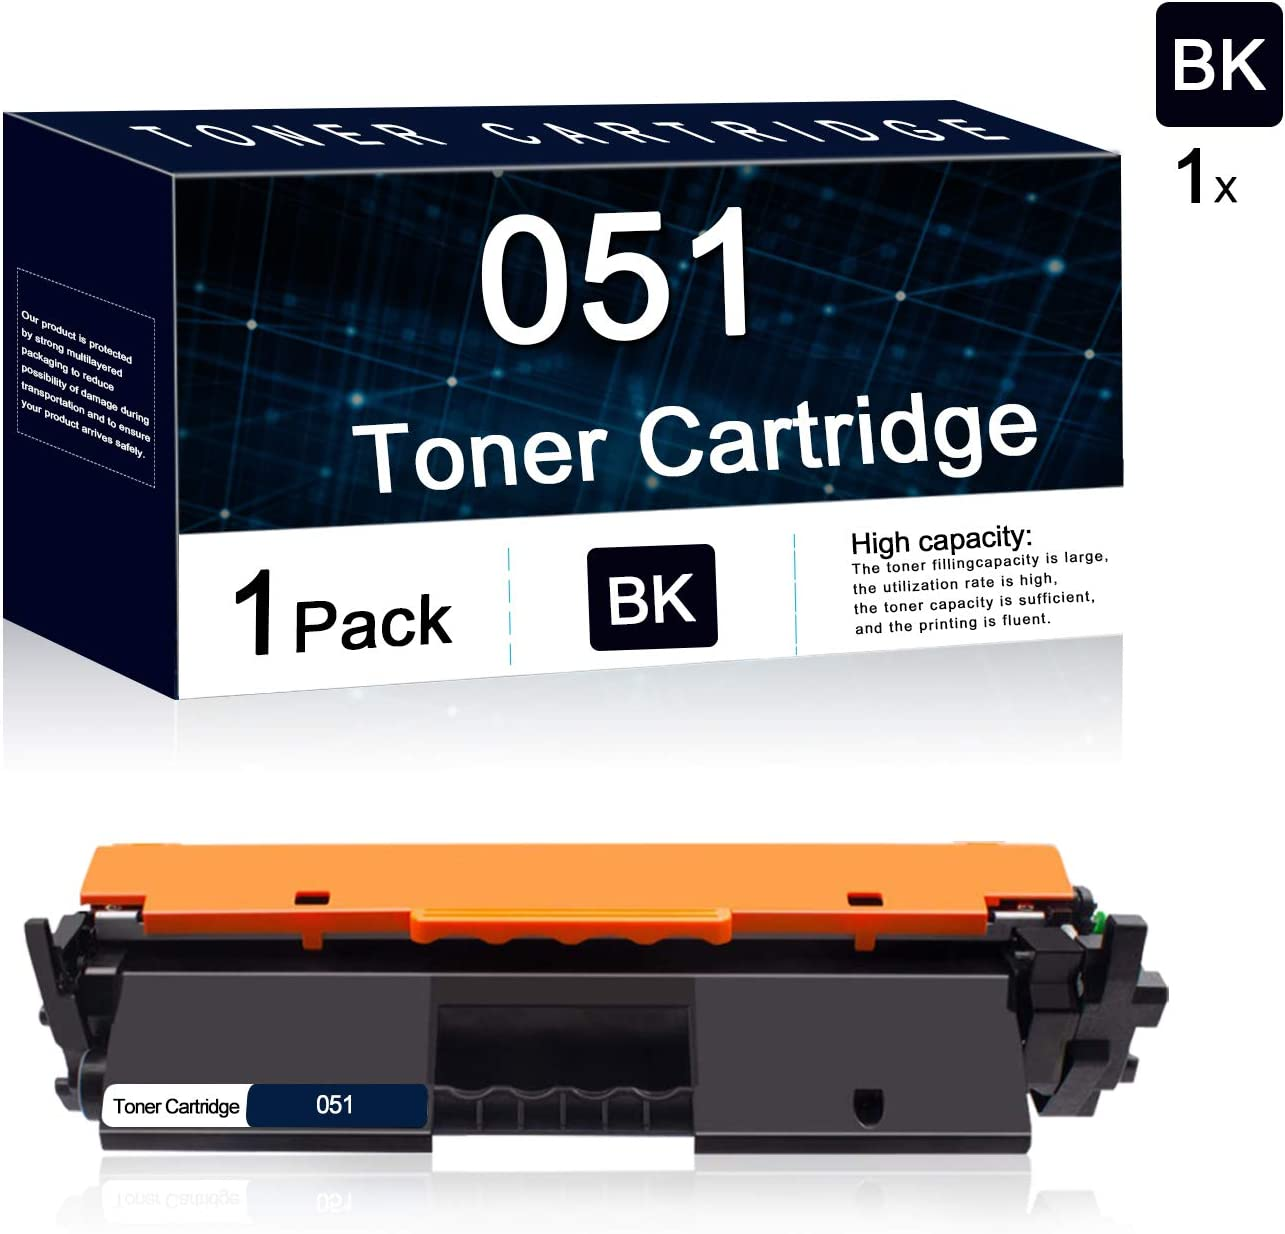 1 Pack 051 Drum Cartridge Replacement for Canon Toner Cartridge 051 ImageCLASS LBP161dw LBP162dw MF263dw MF267dw MF264dw MF266dw MF269dw MF160 LBP160 MF260 LBP260 Series Printer